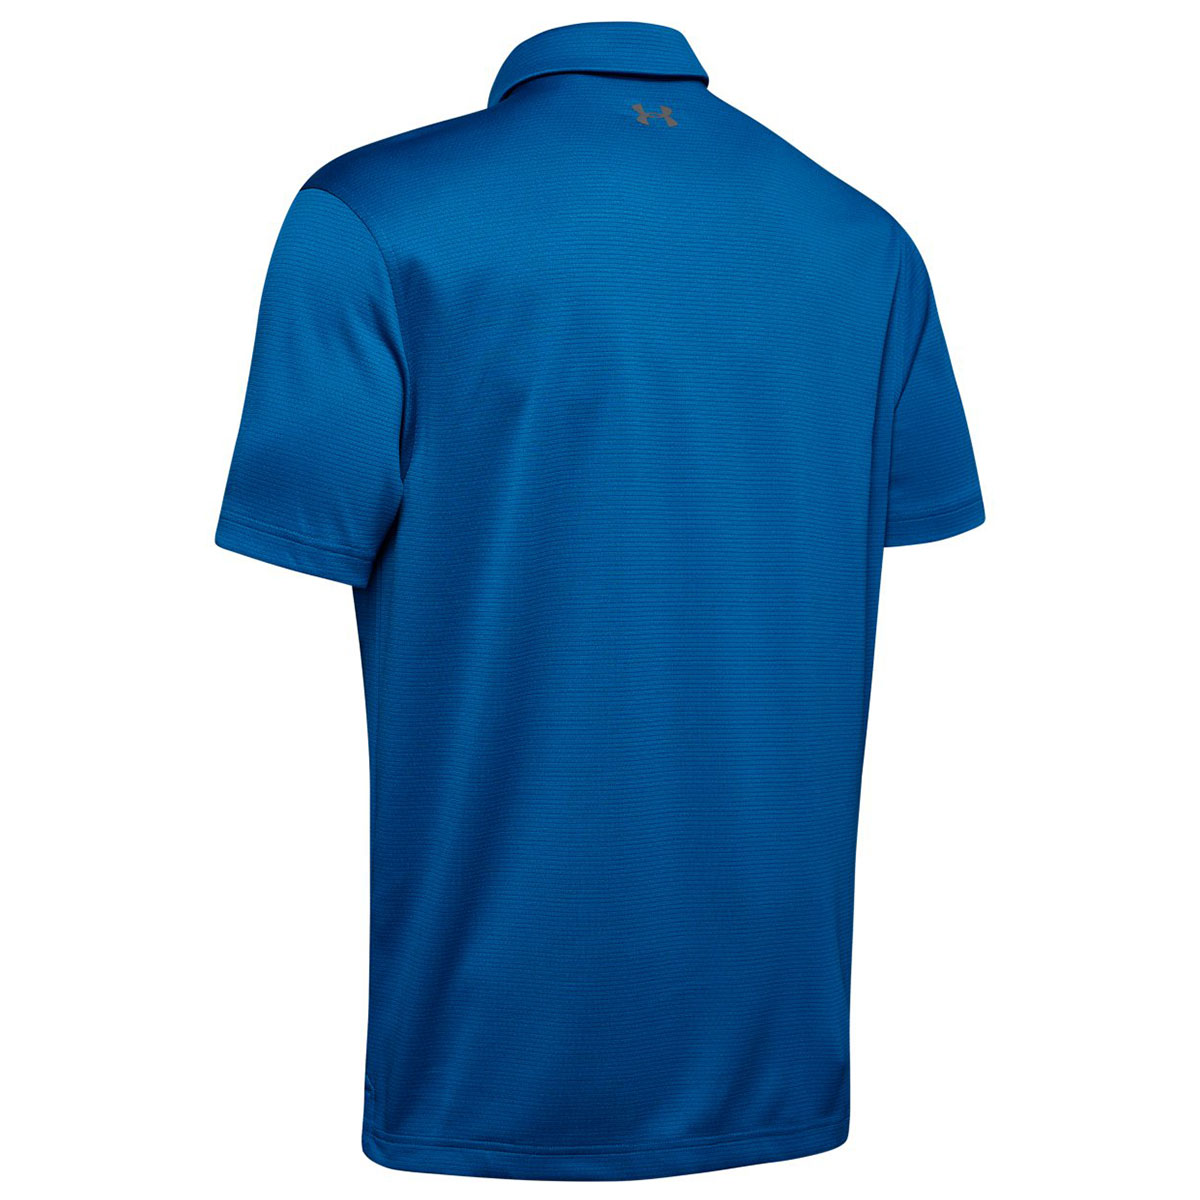 Under-Armour-Mens-2019-Golf-Tech-Wicking-Textured-Soft-Light-Polo-Shirt thumbnail 77